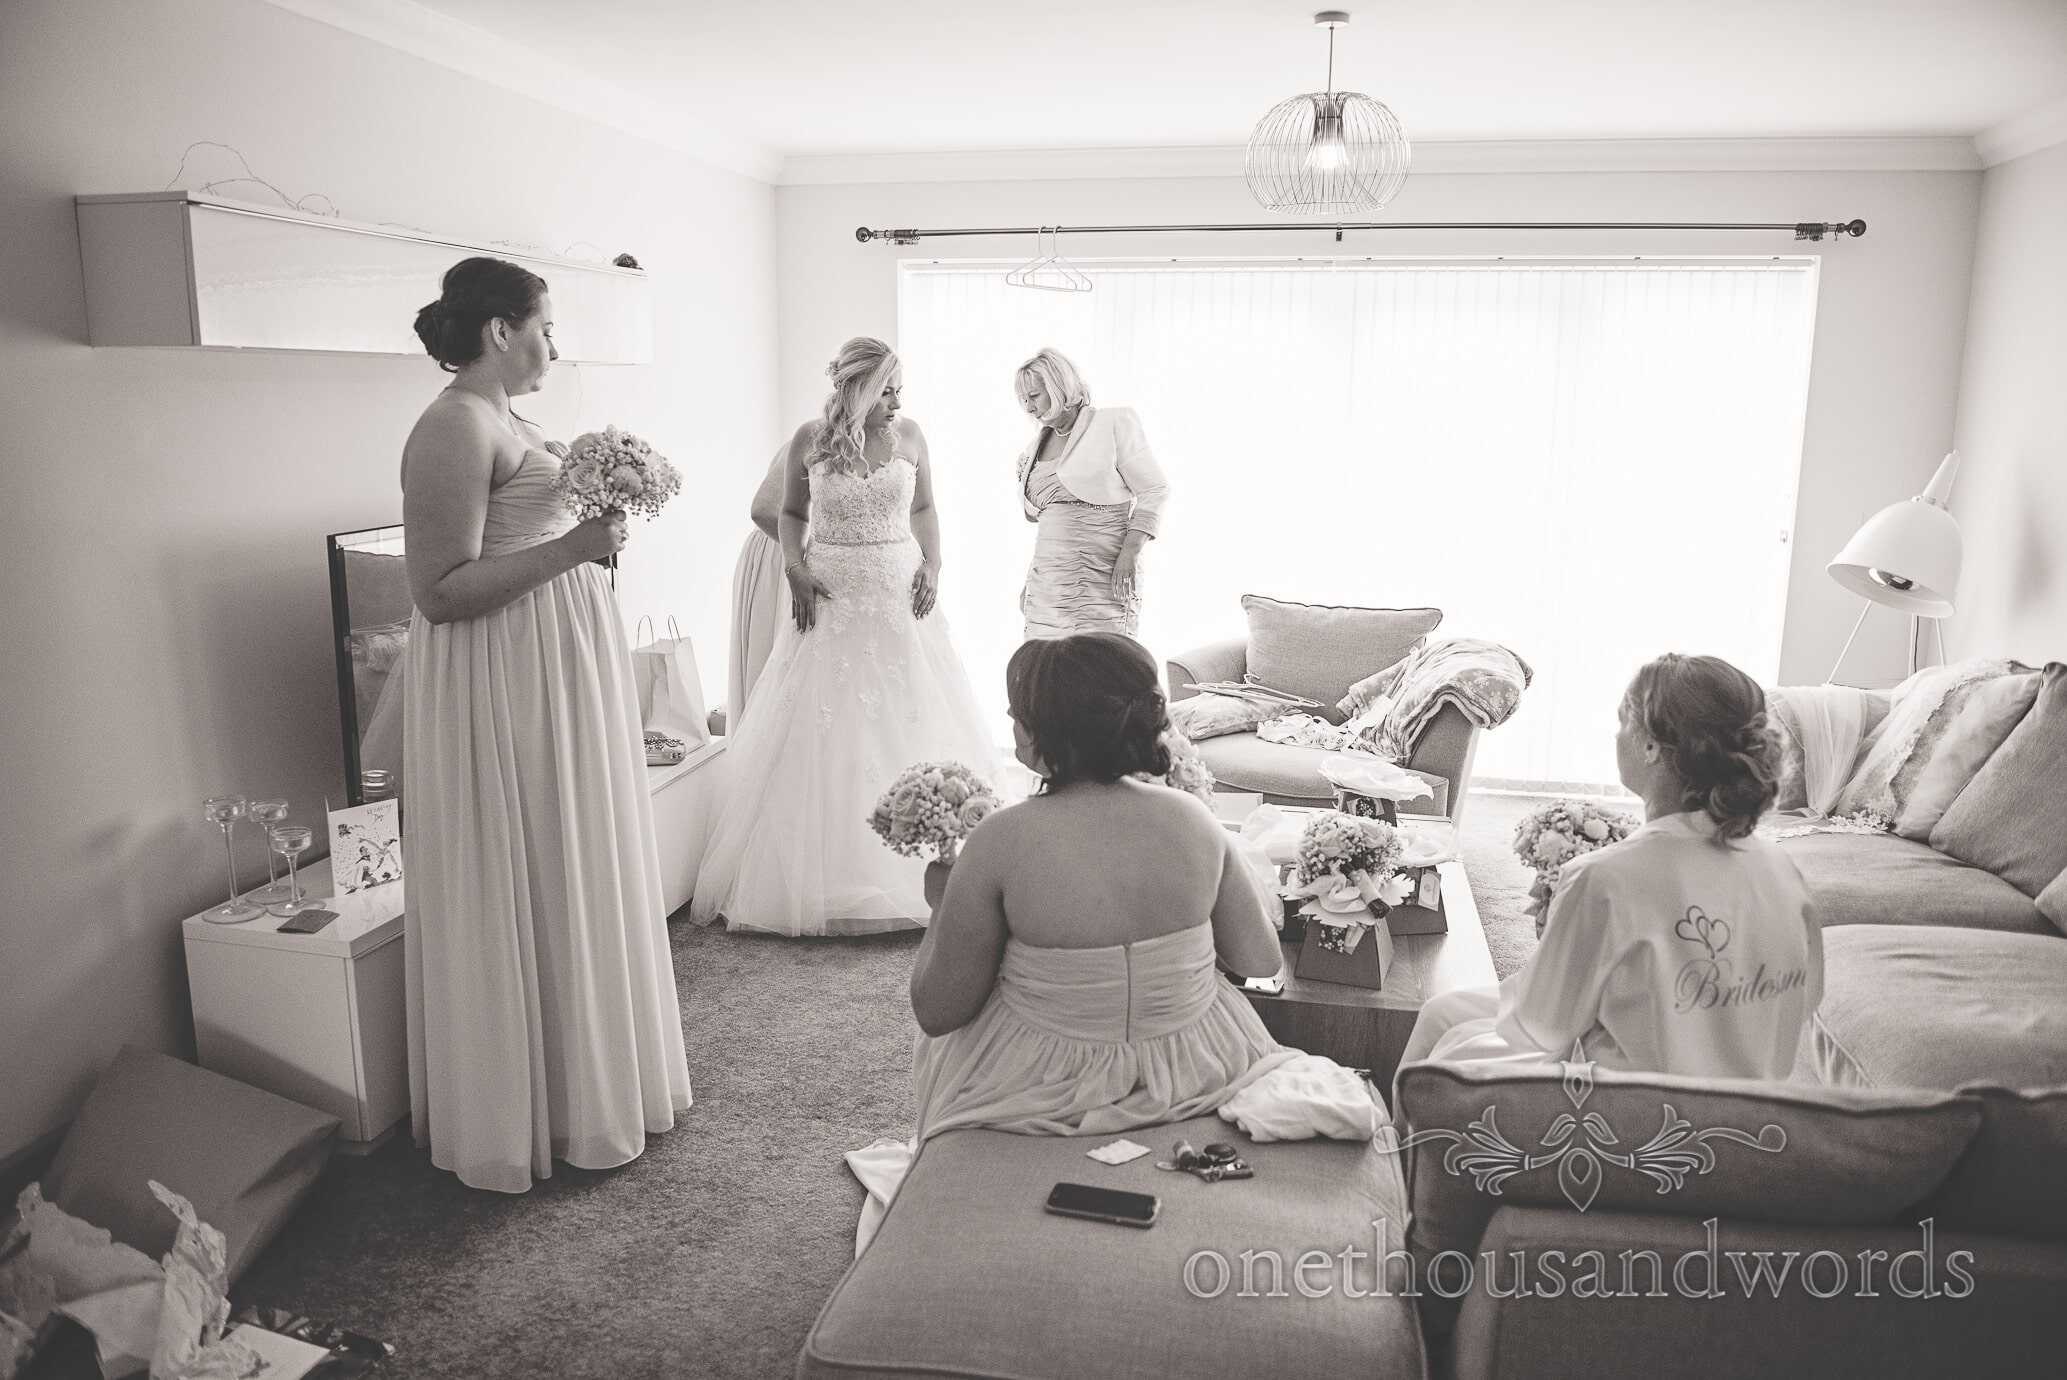 Black and white wedding photograph of bride being laced into wedding dress